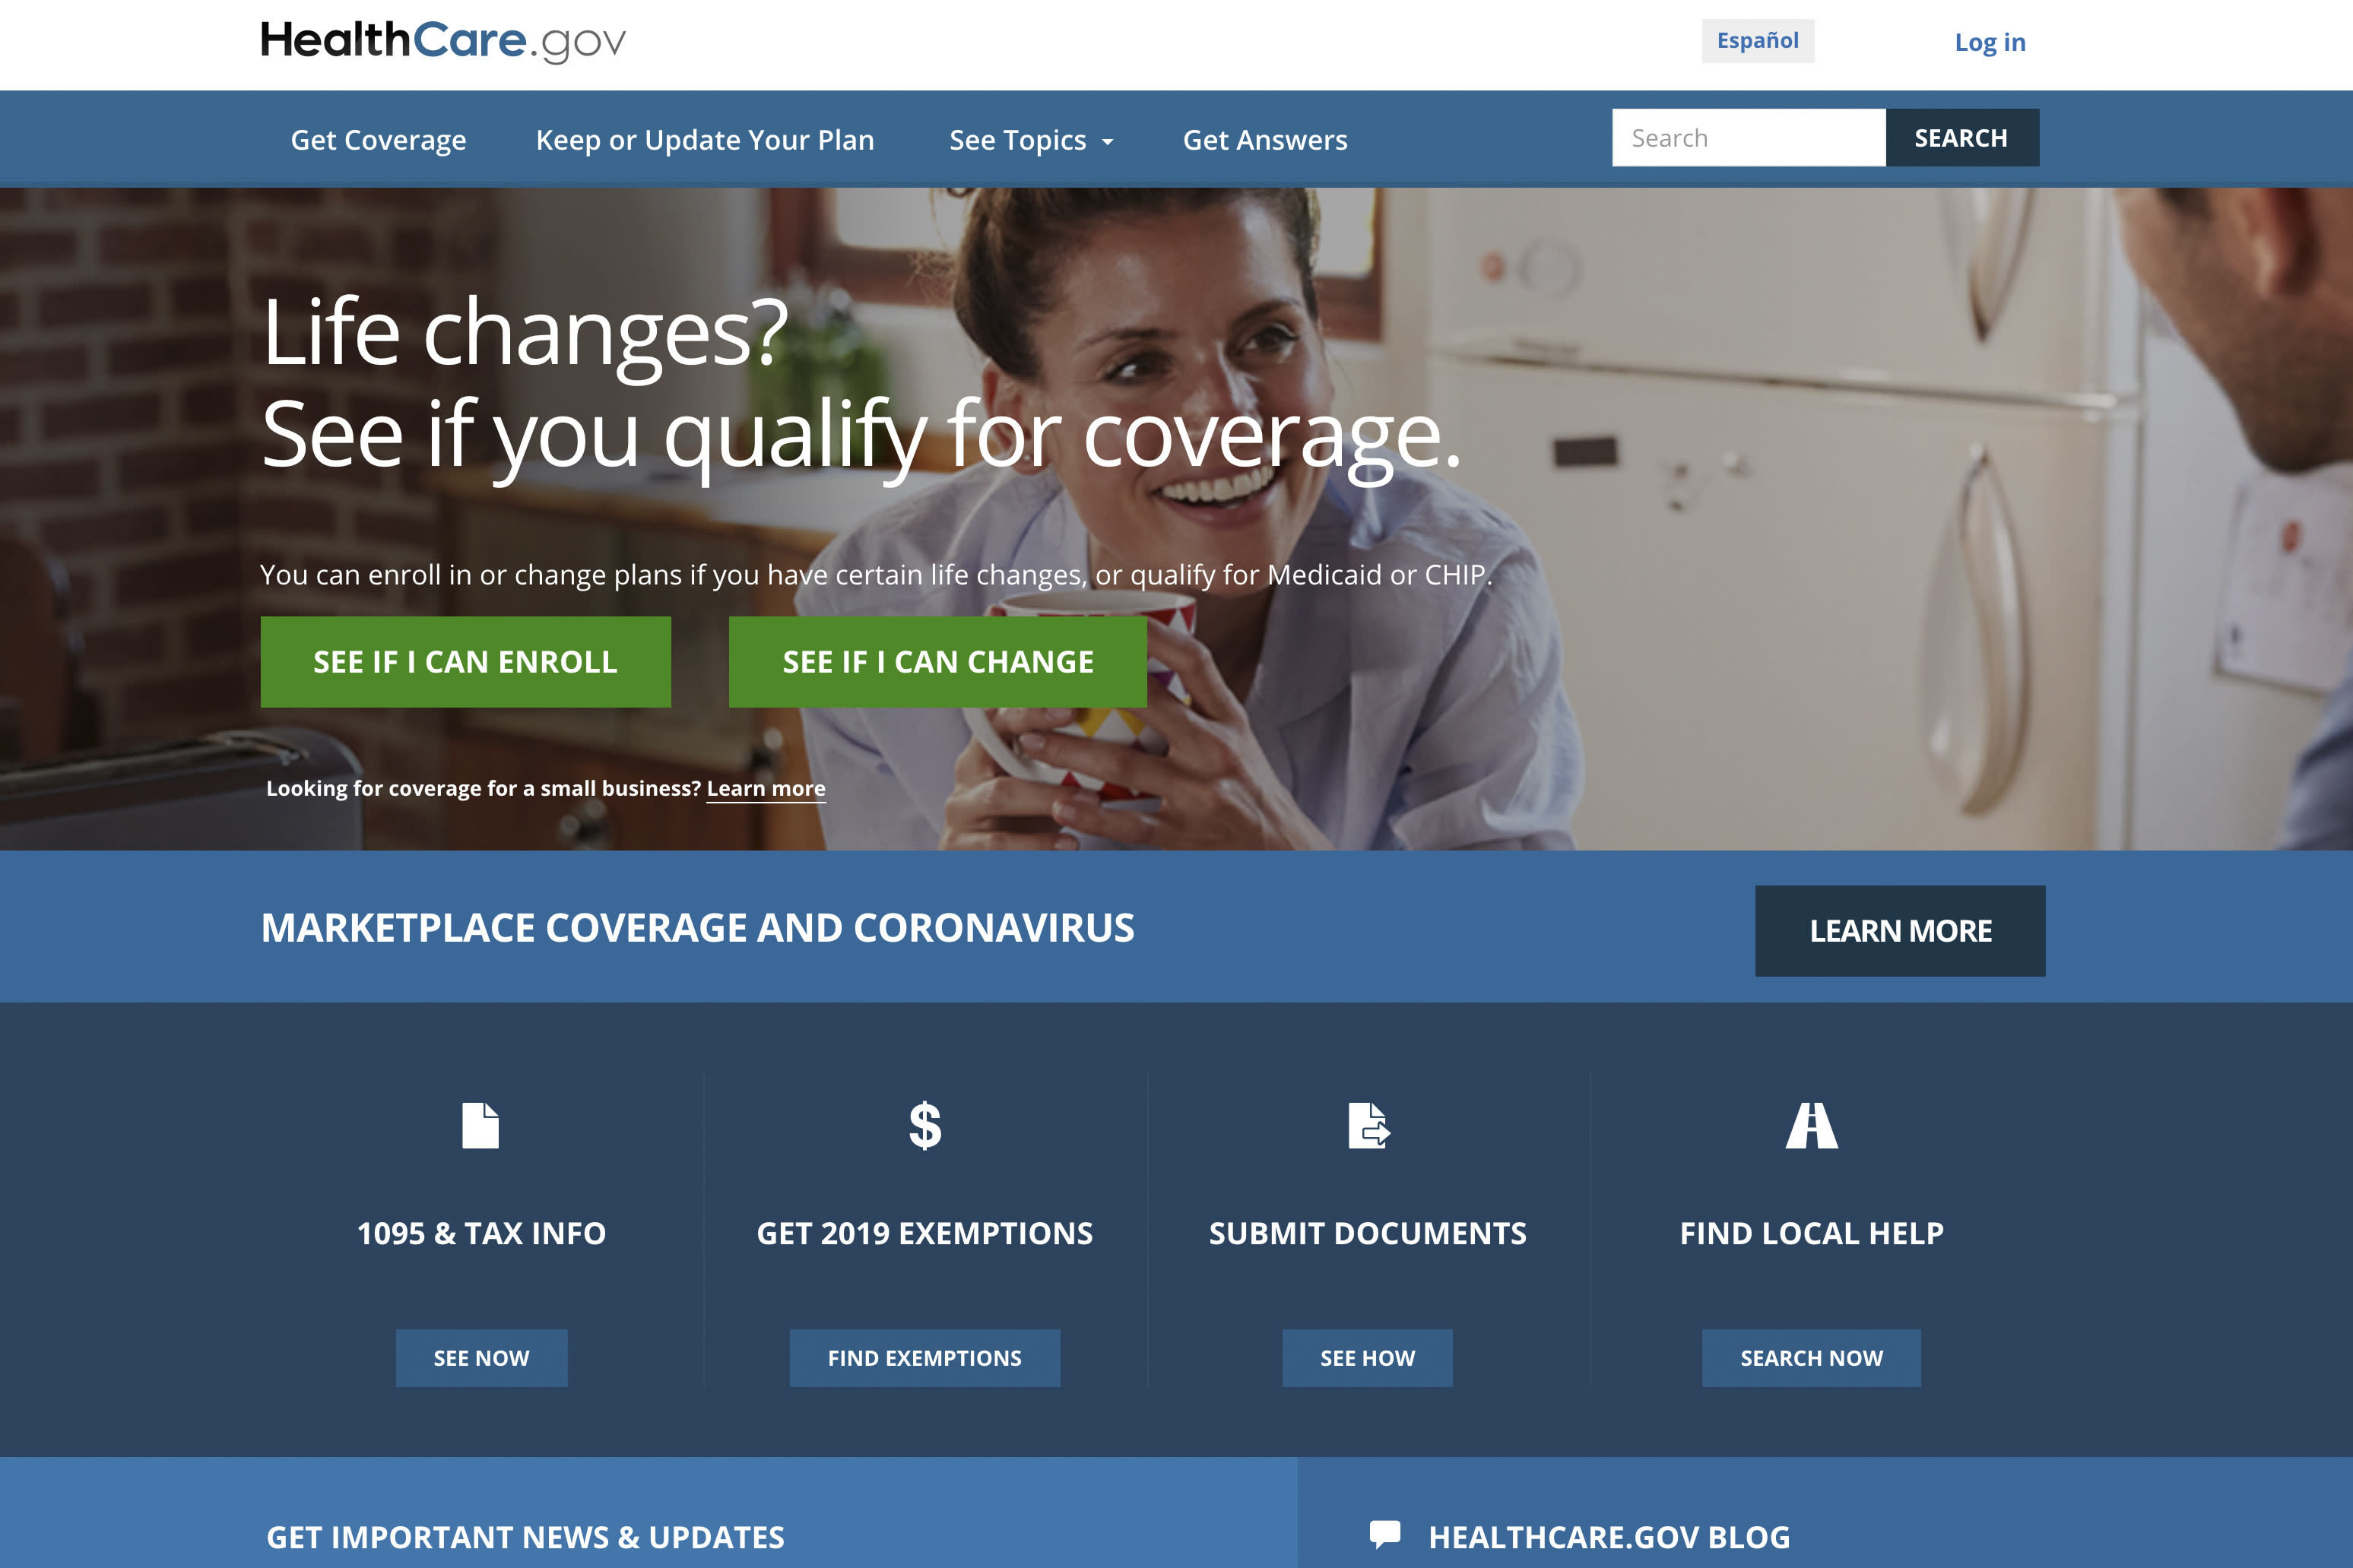 Close to half a million people who lost their health insurance amid the economic shutdown to slow the spread of COVID-19 have gotten cove